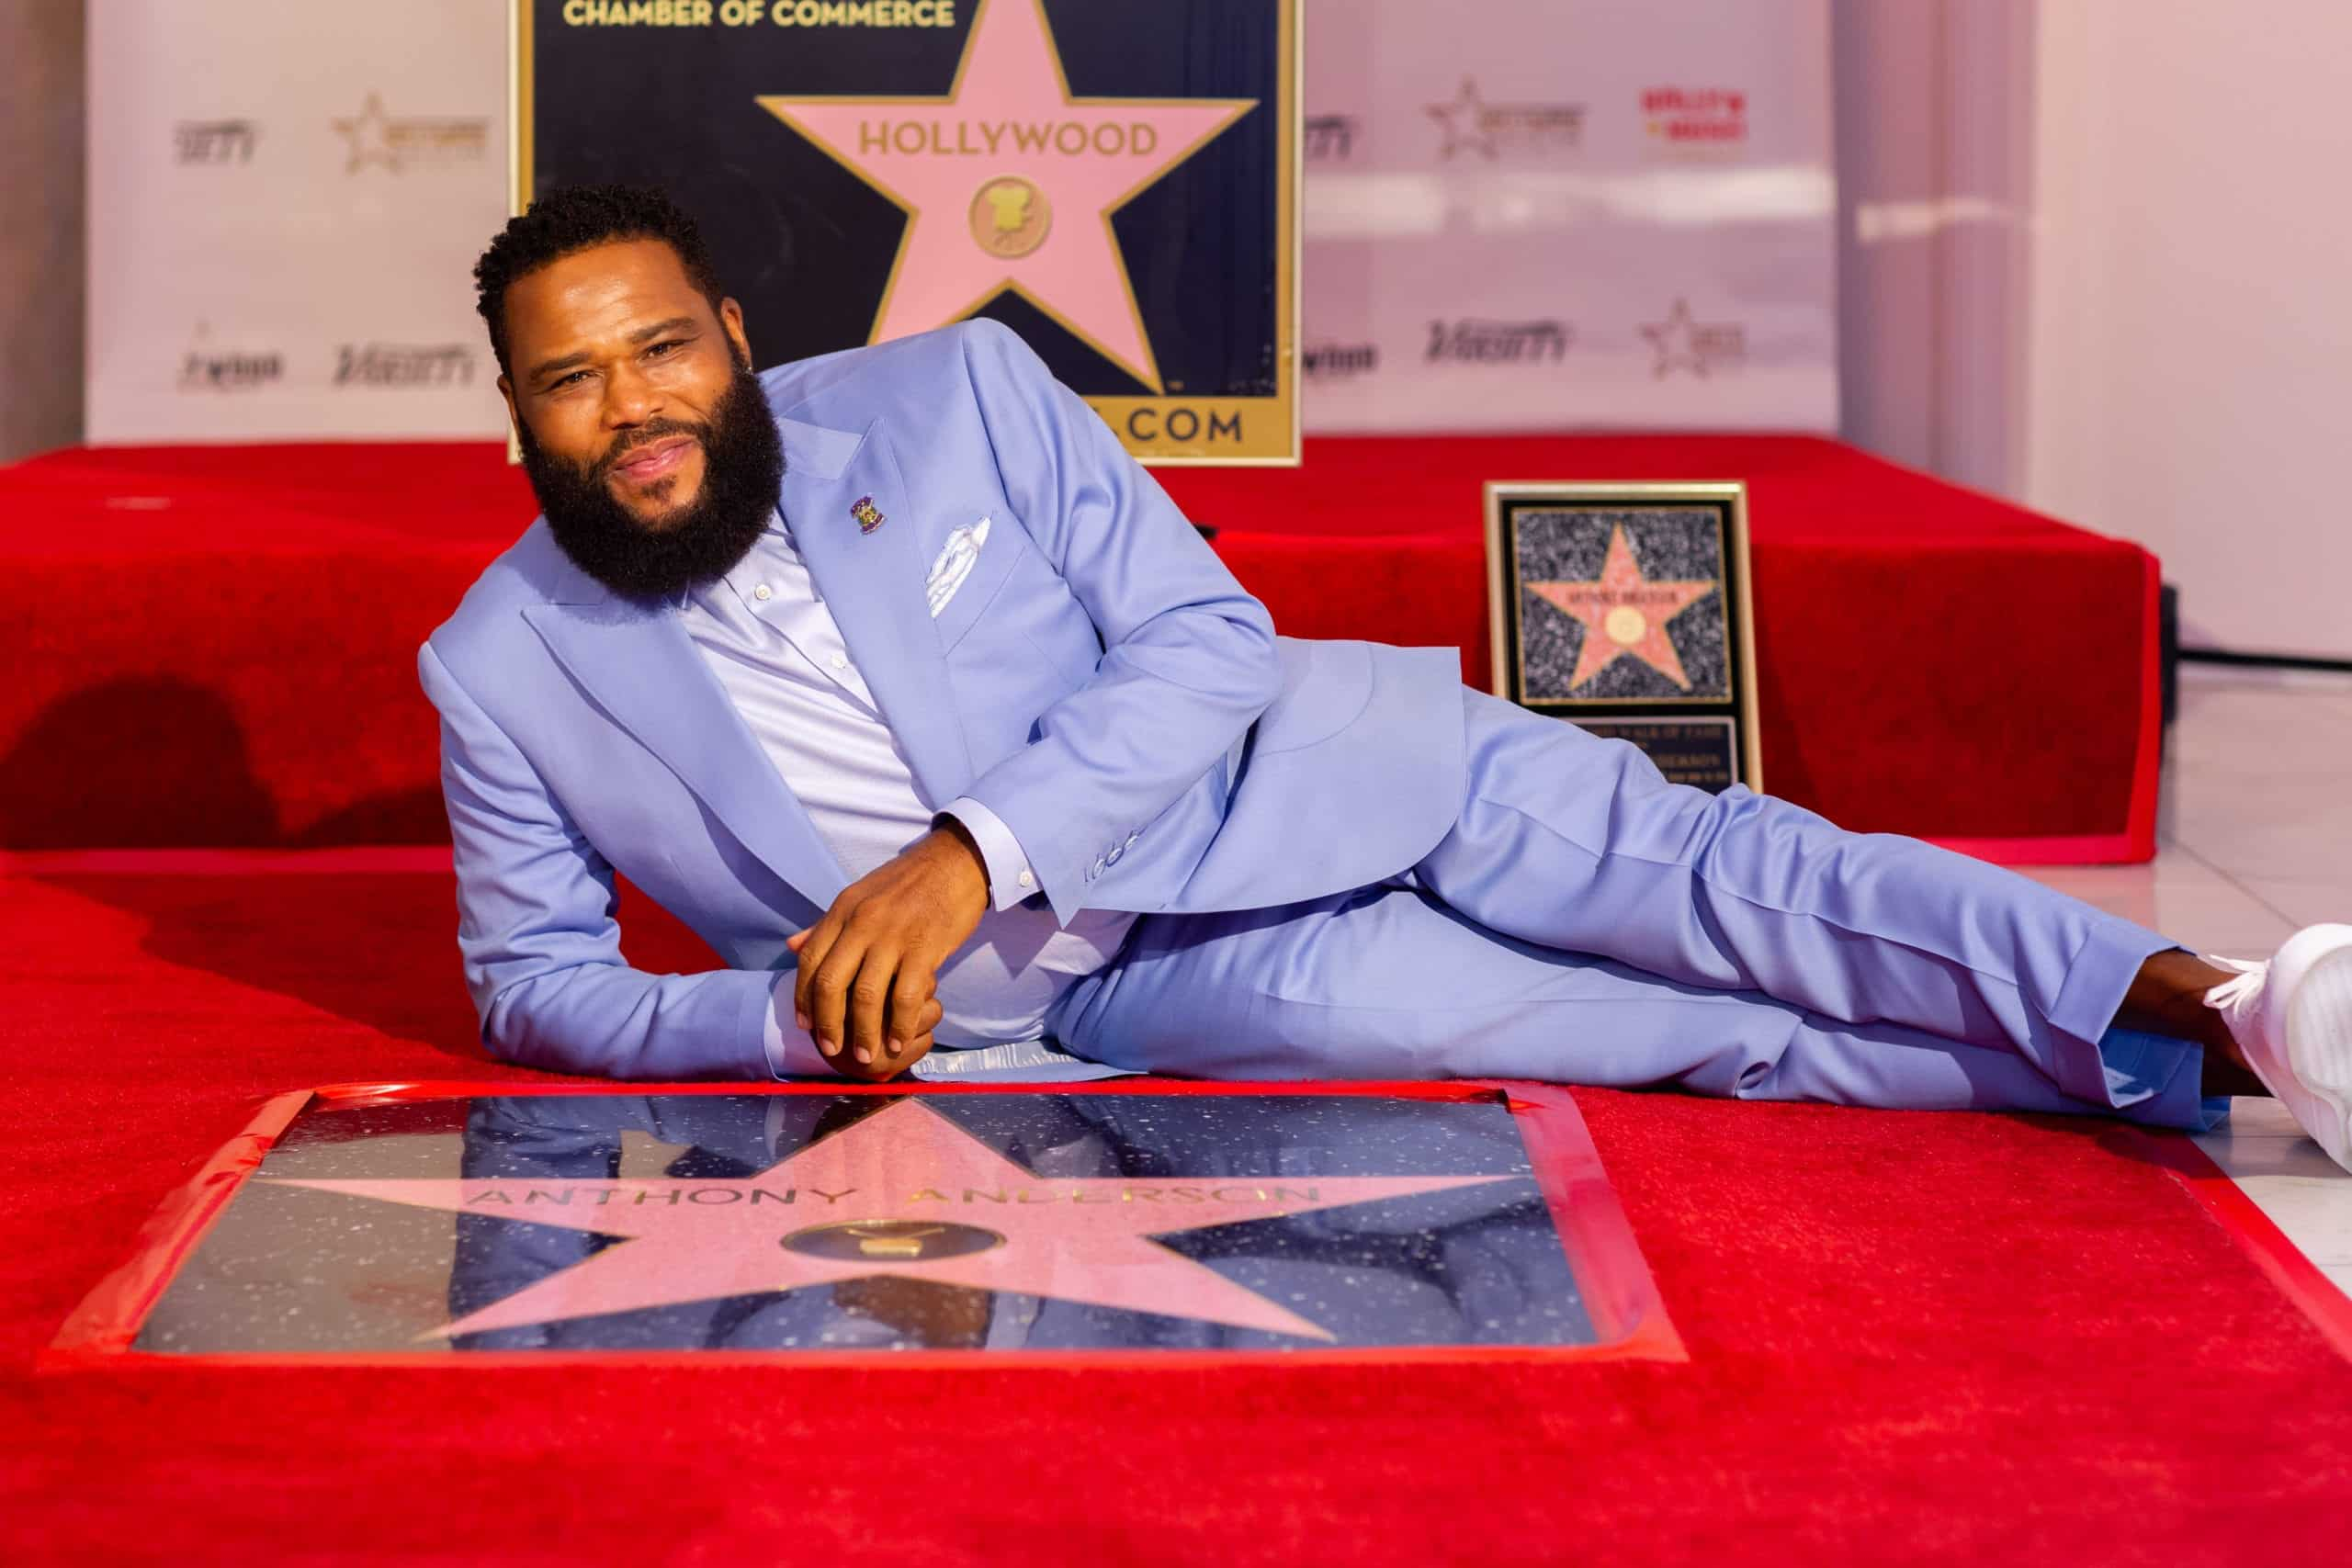 ACTOR ANTHONY ANDERSON CELEBRATES UPCOMING 50TH BIRTHDAY WITH THE DEDICATION OF THE 2,691ST STAR ON THE HOLLYWOOD WALK OF FAME